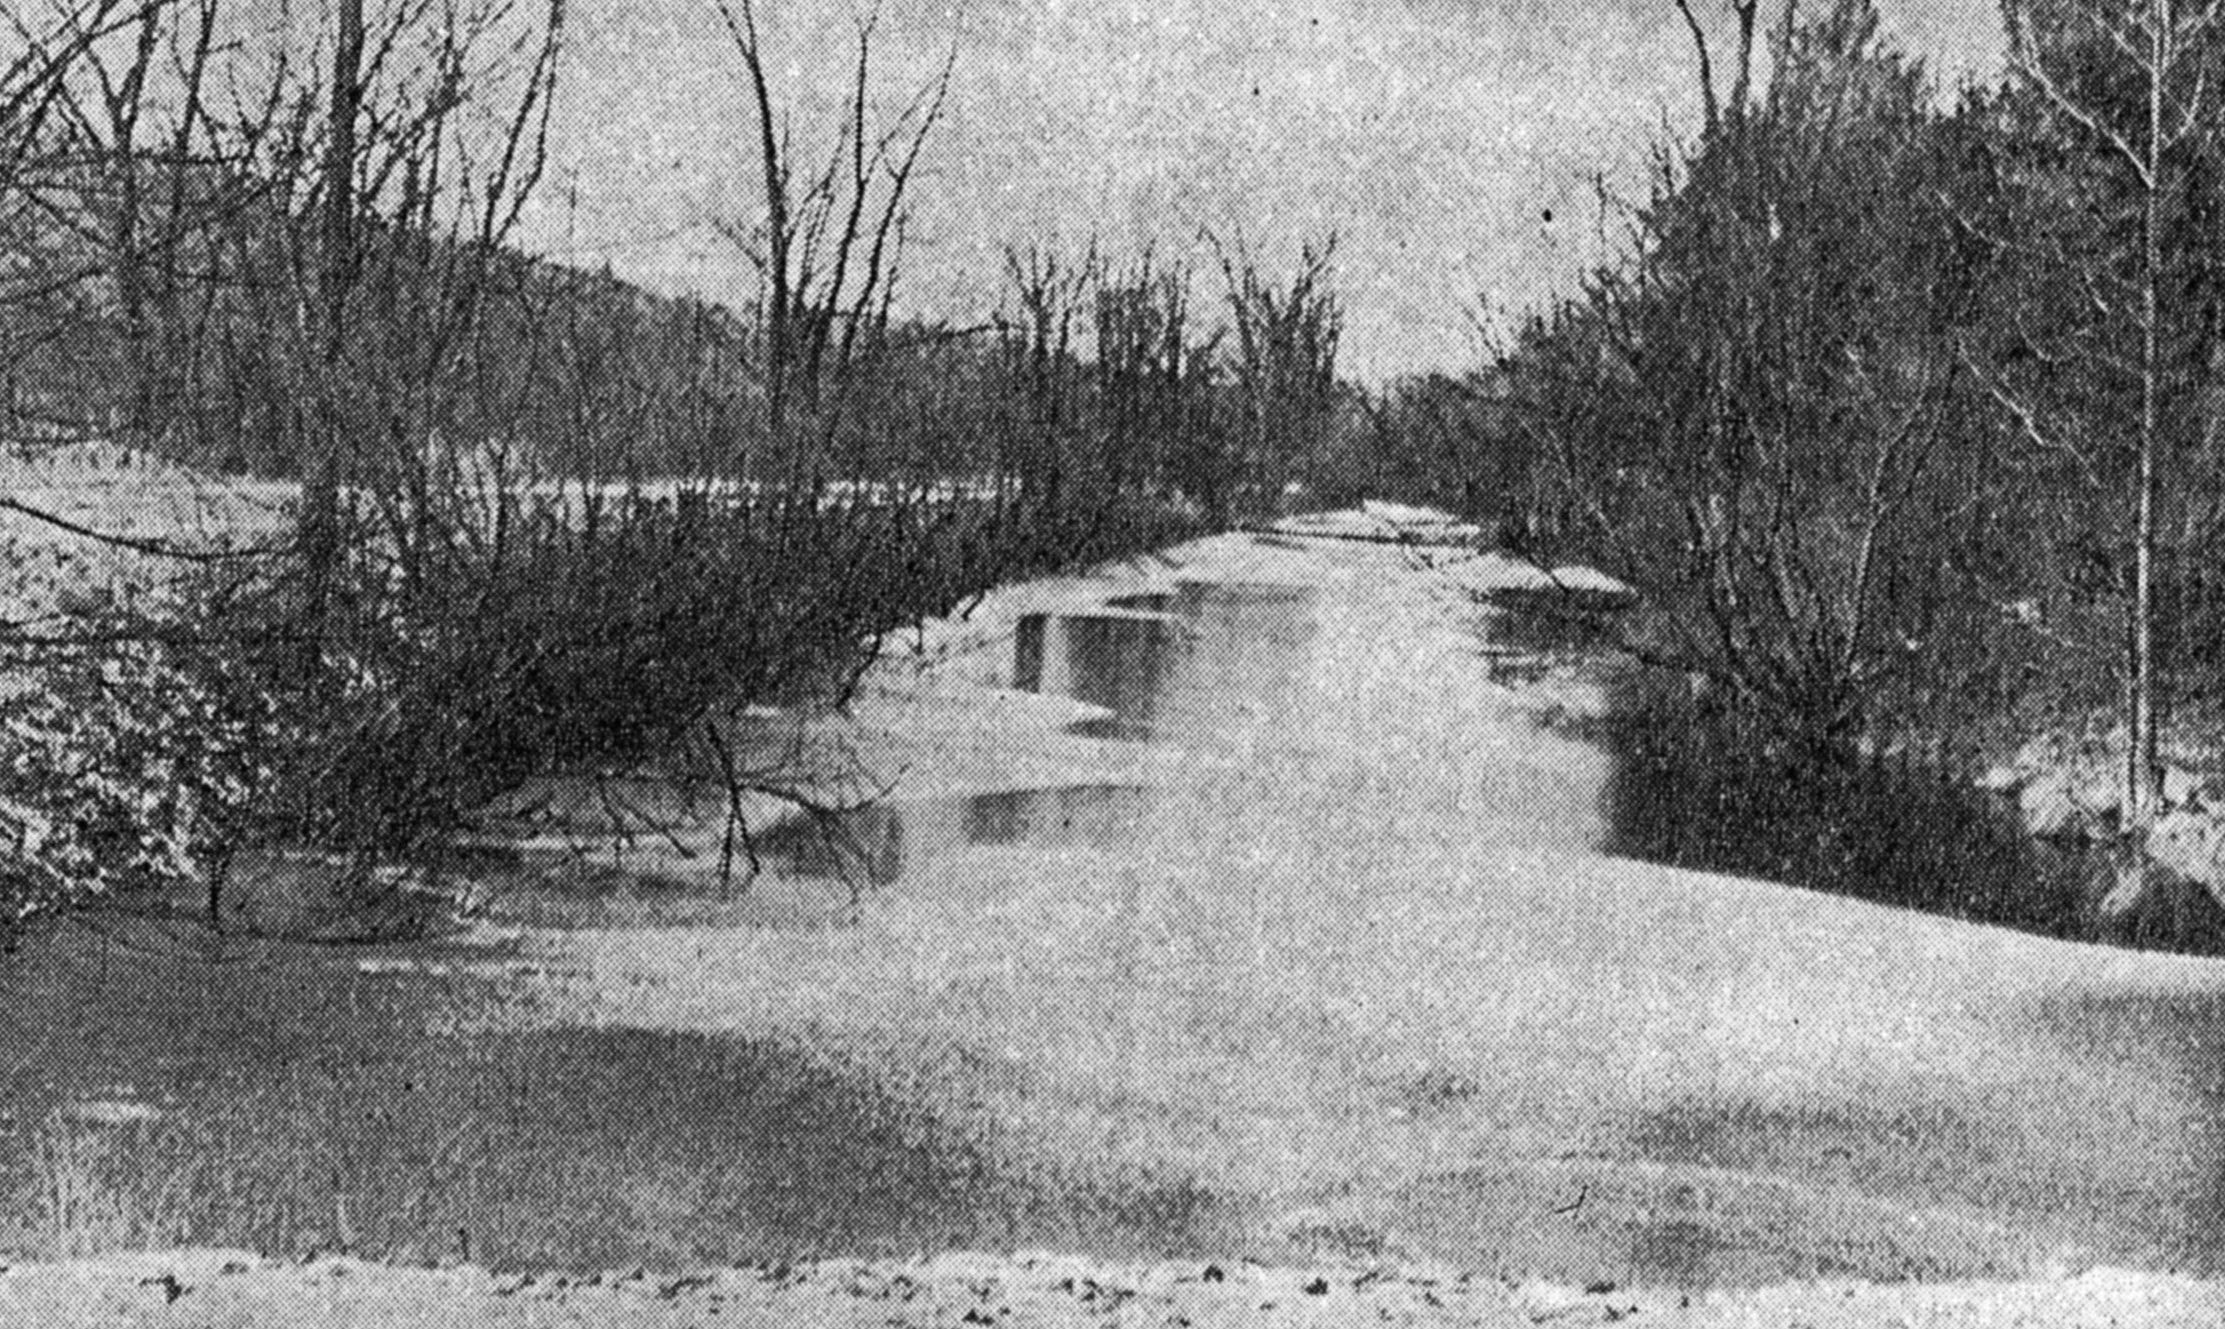 Spanning Time: The Chenango Canal restoration that never happened